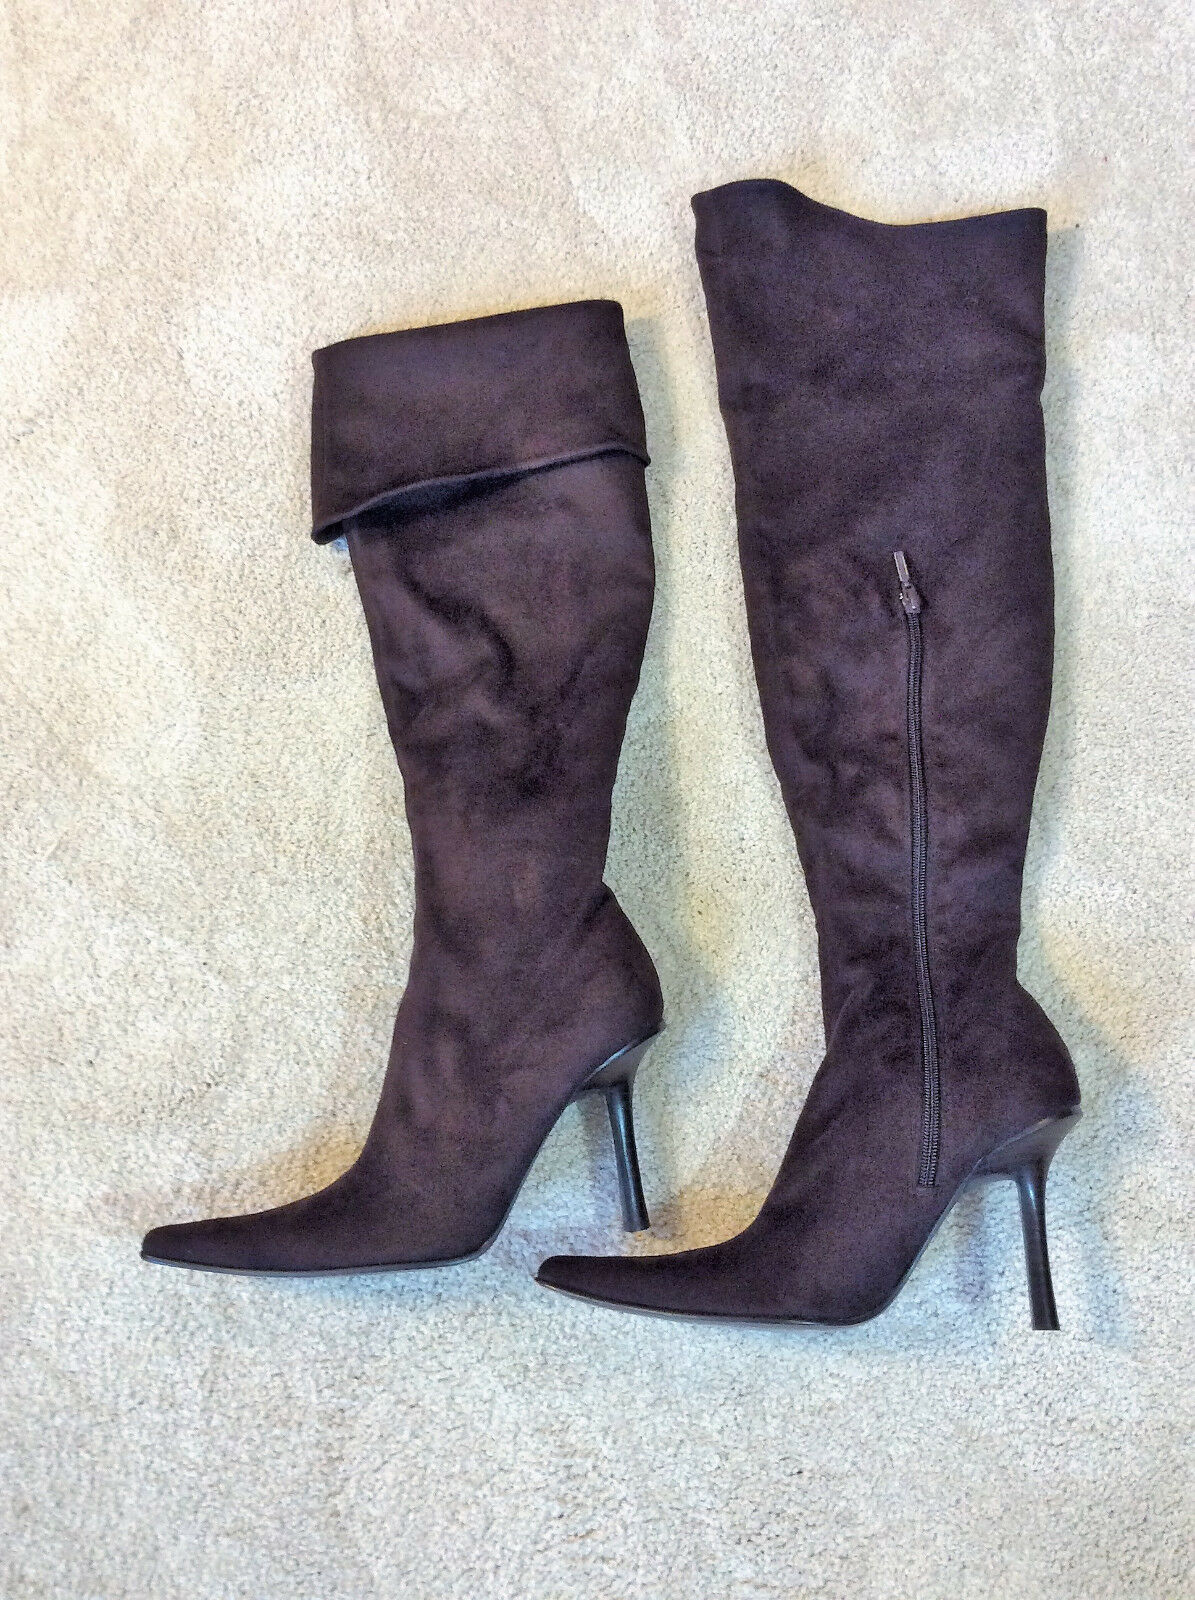 Bebe Women's Dark Brown Faux Suede Pointy Toe Thigh High Boots Size 9M